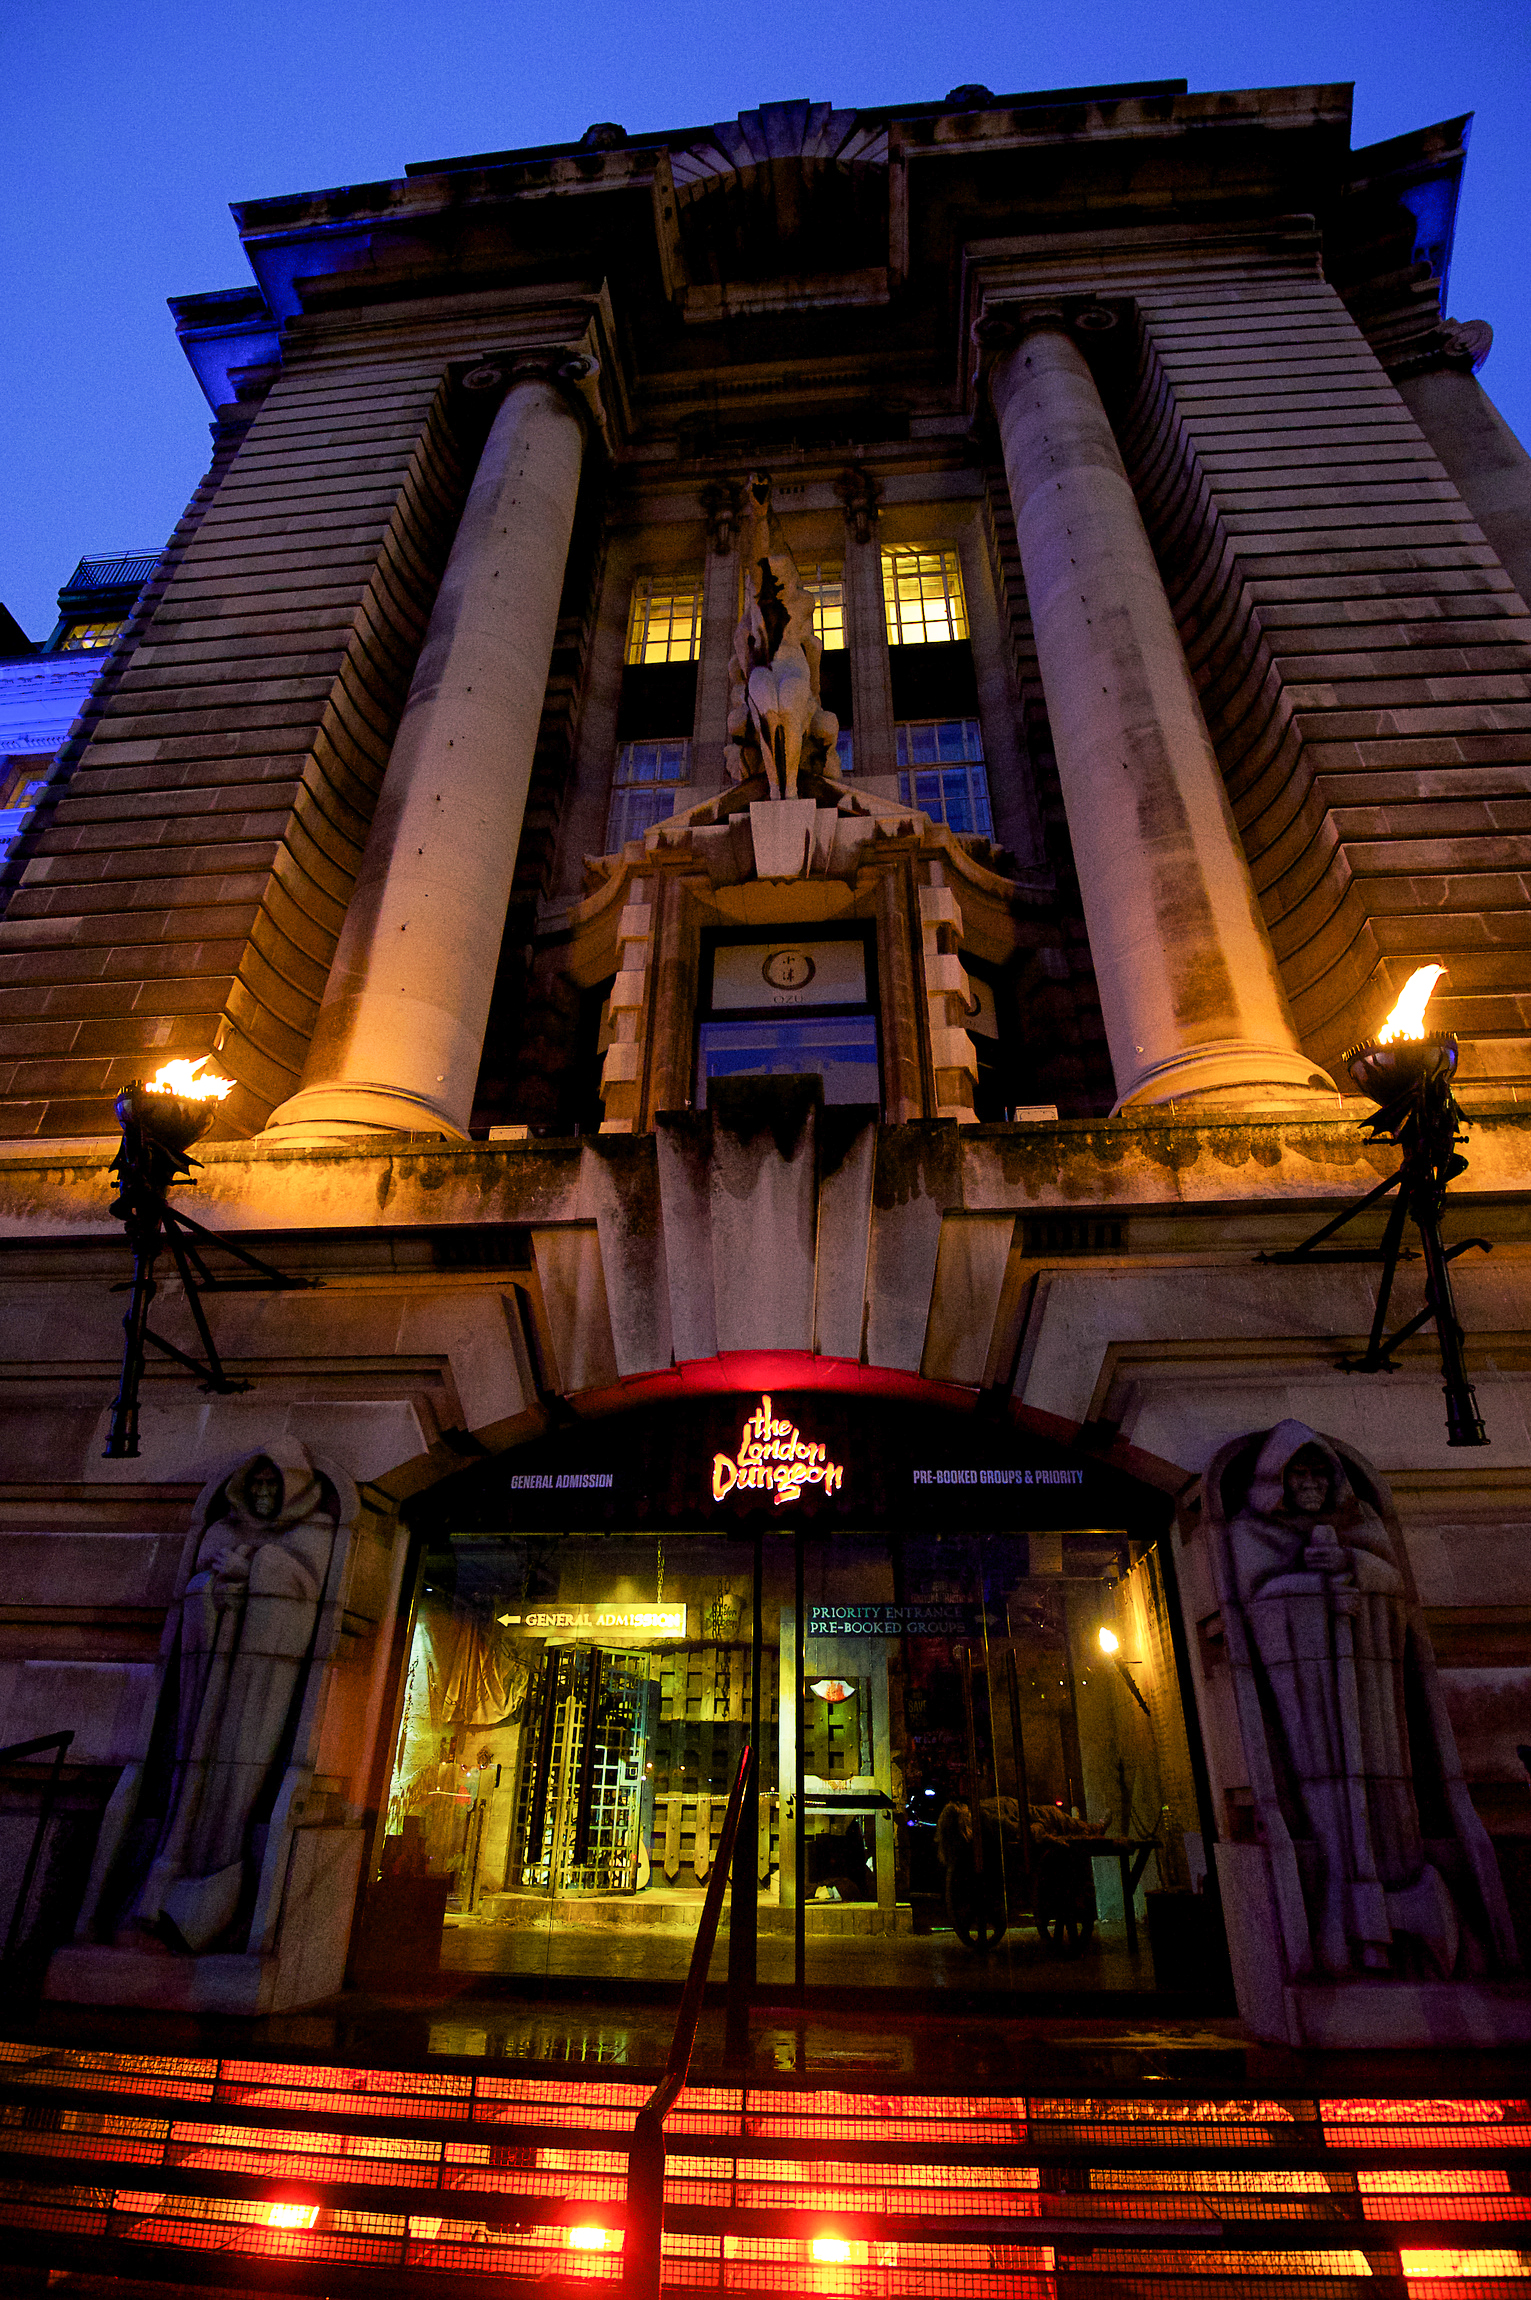 The London Dungeon, London - Address, Hours, Tours, Ticket Price, Reviews, Images